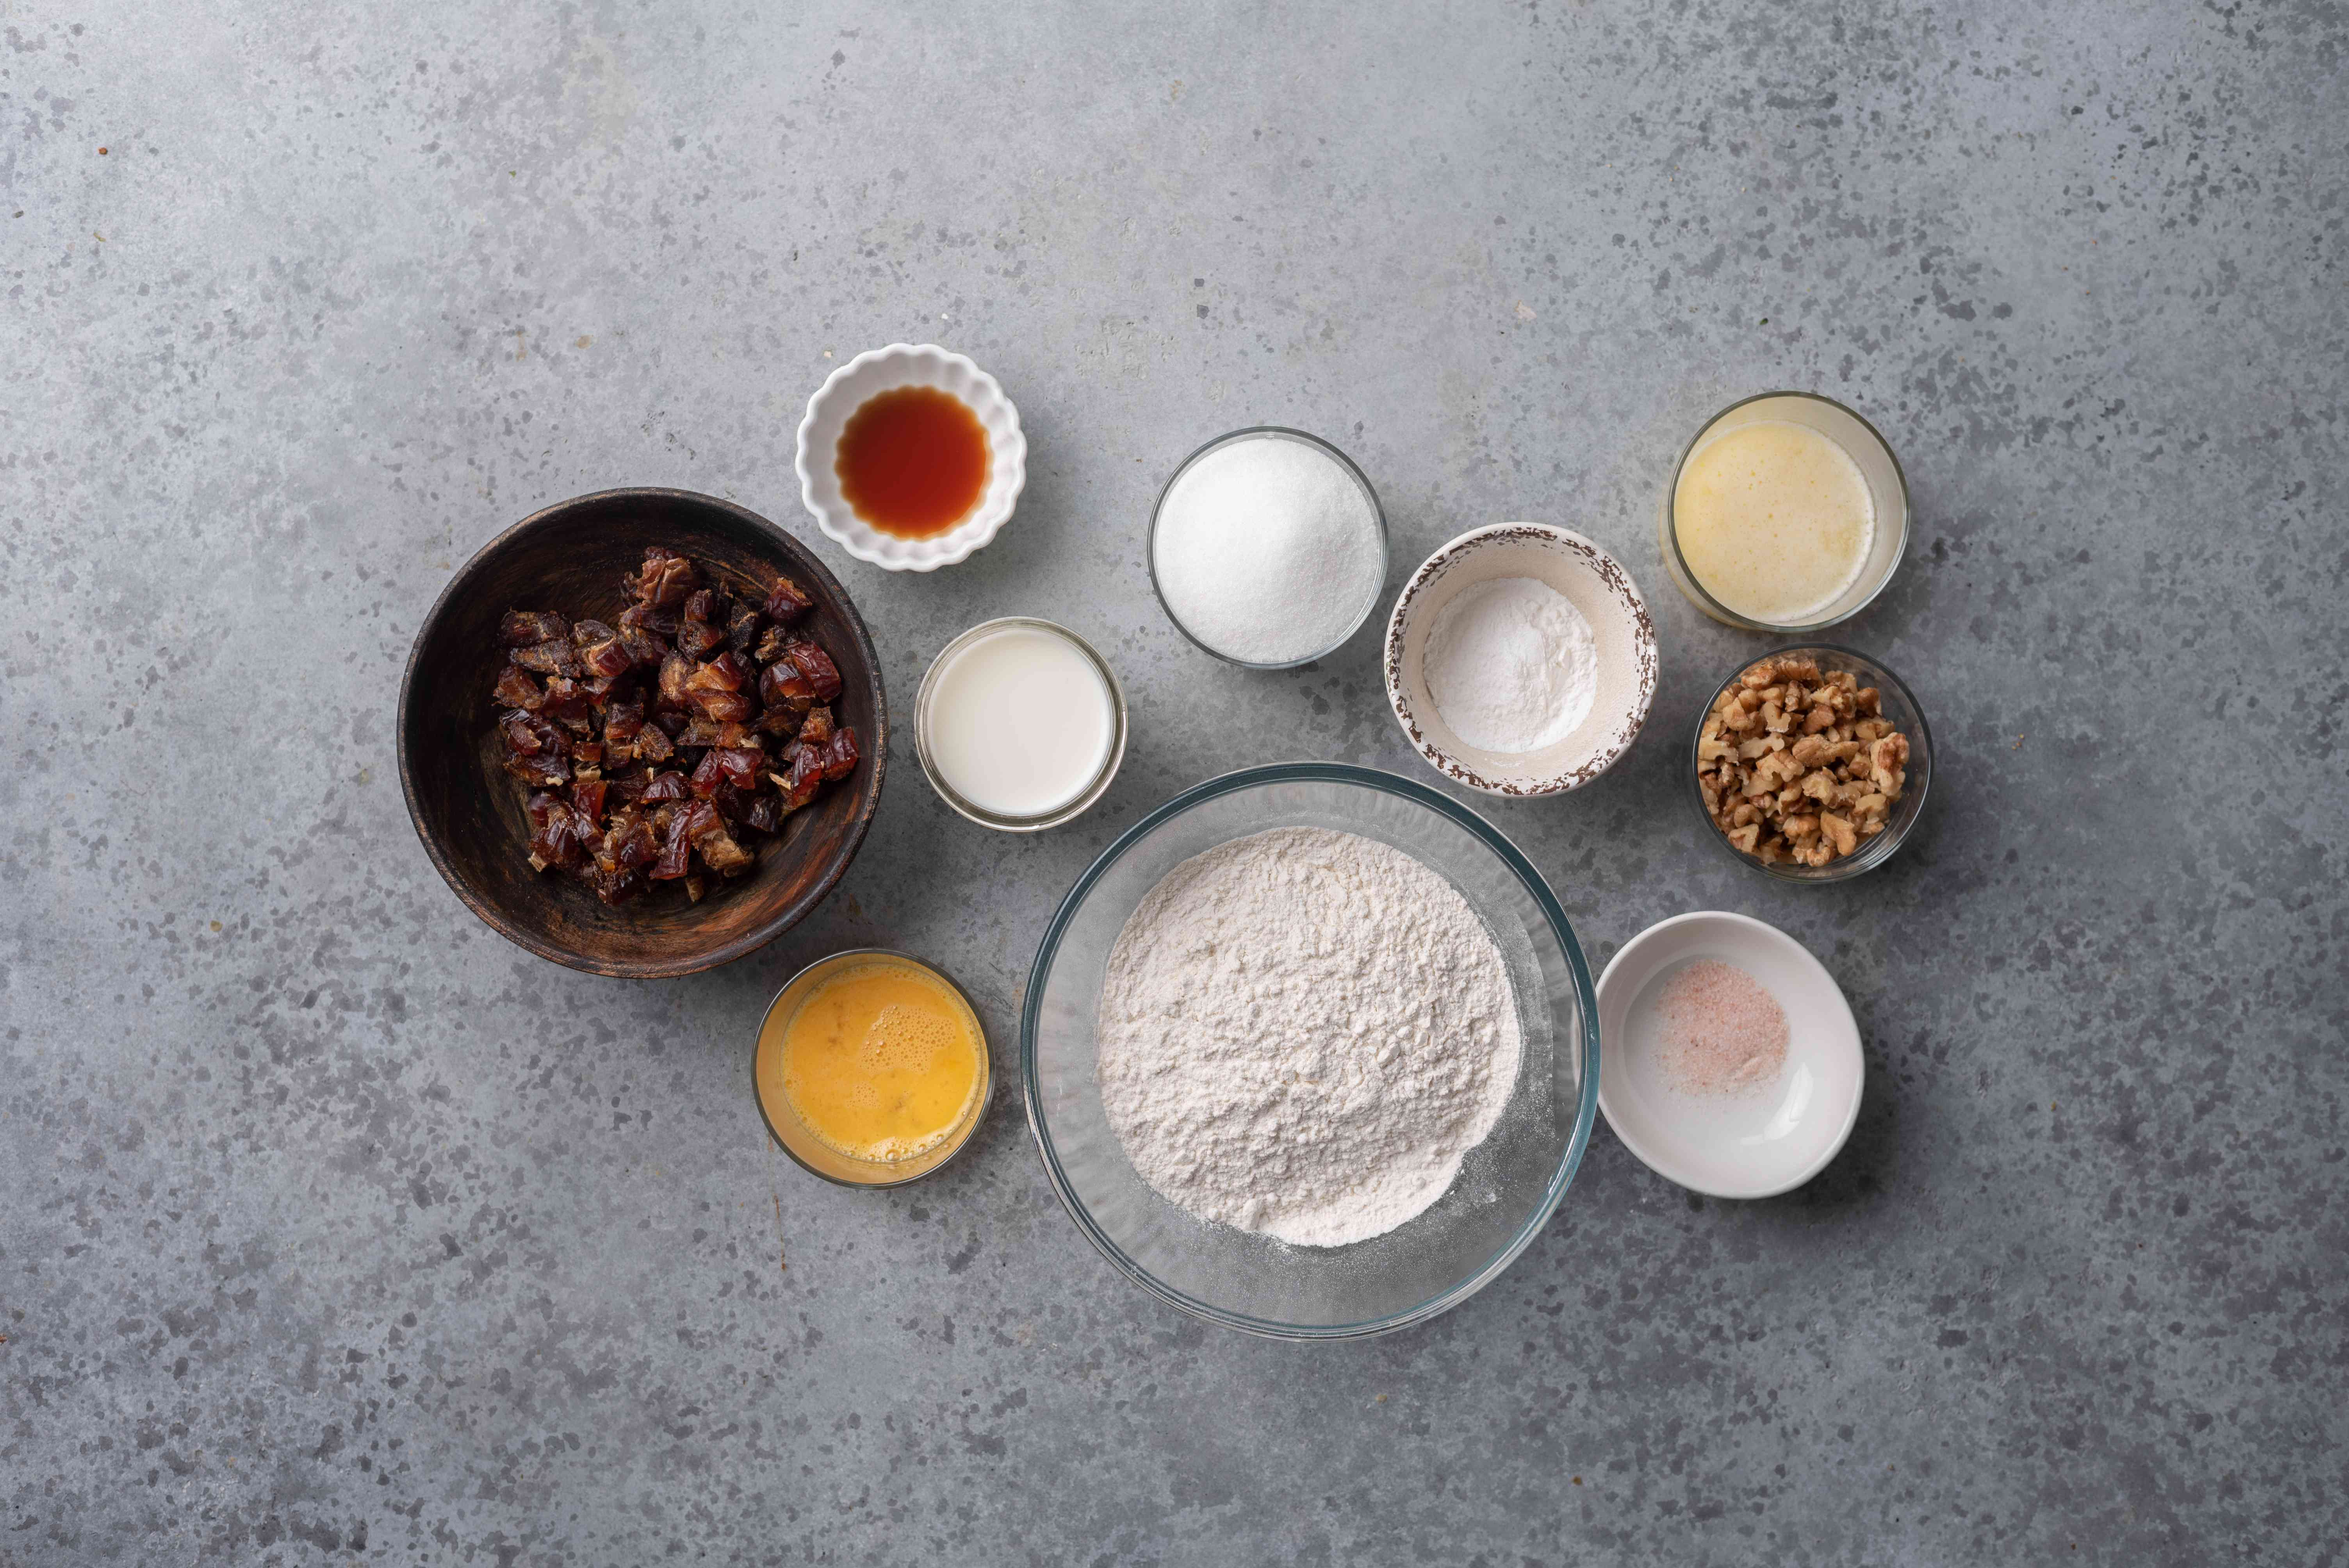 Date Muffins With Walnuts ingredients